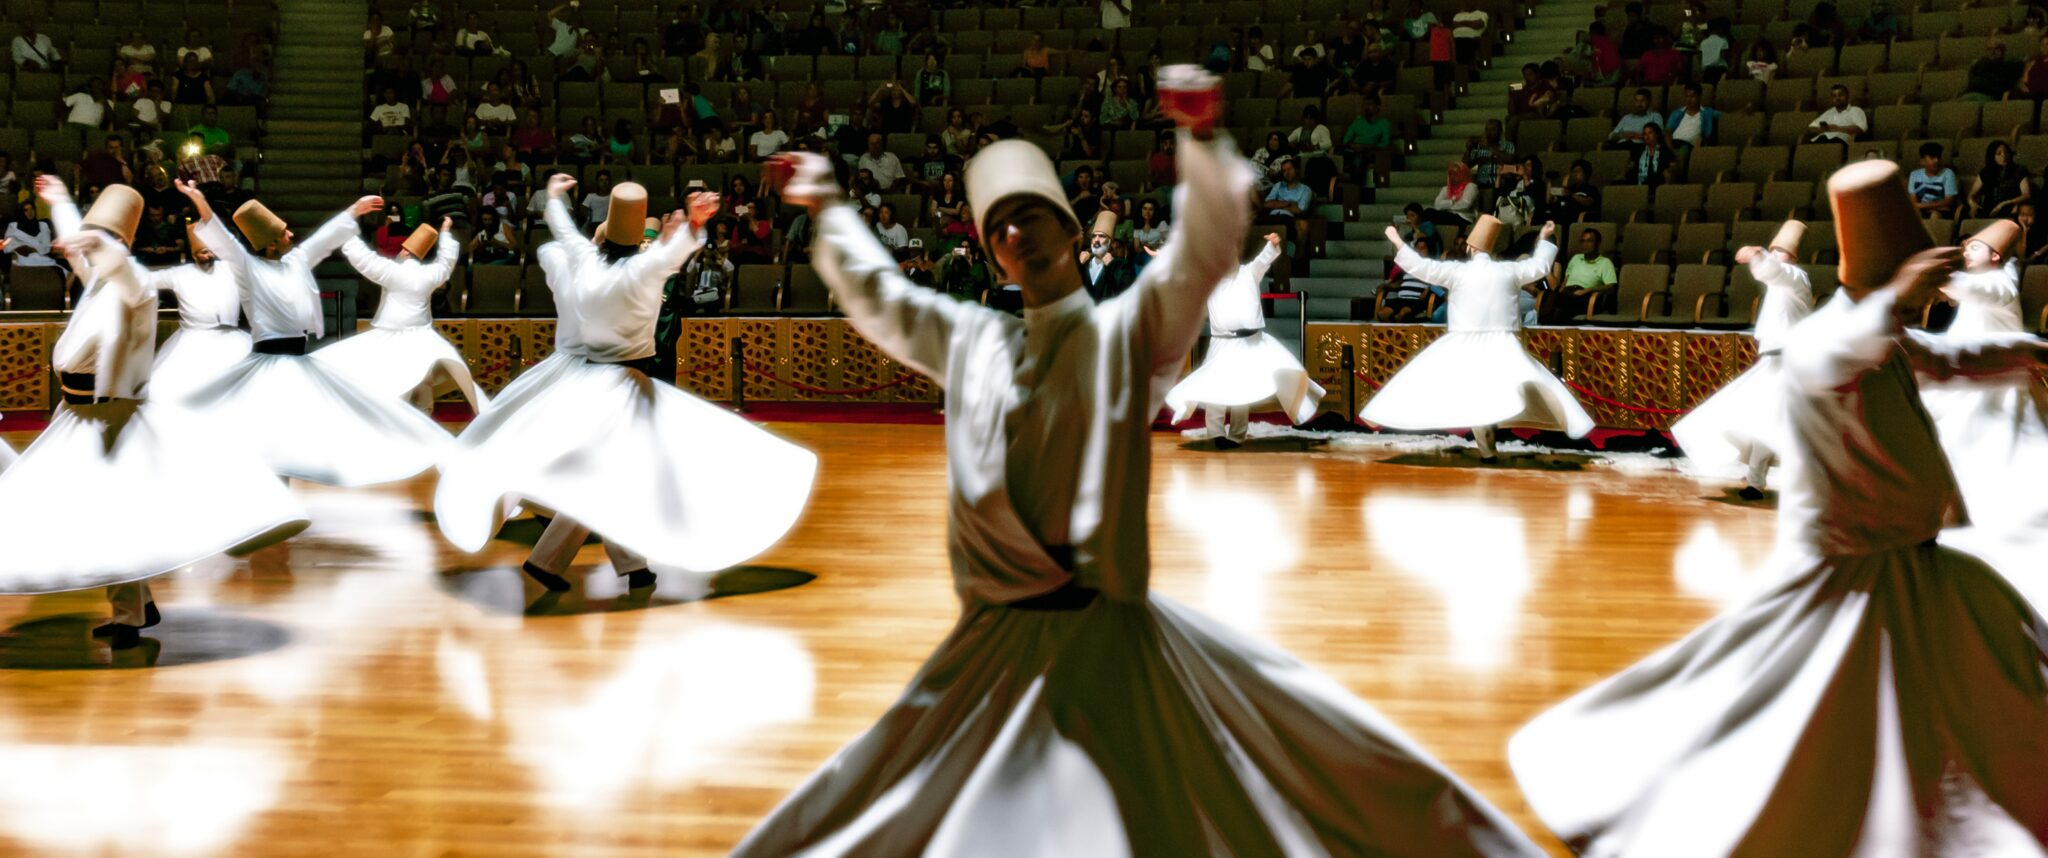 sufism and yoga